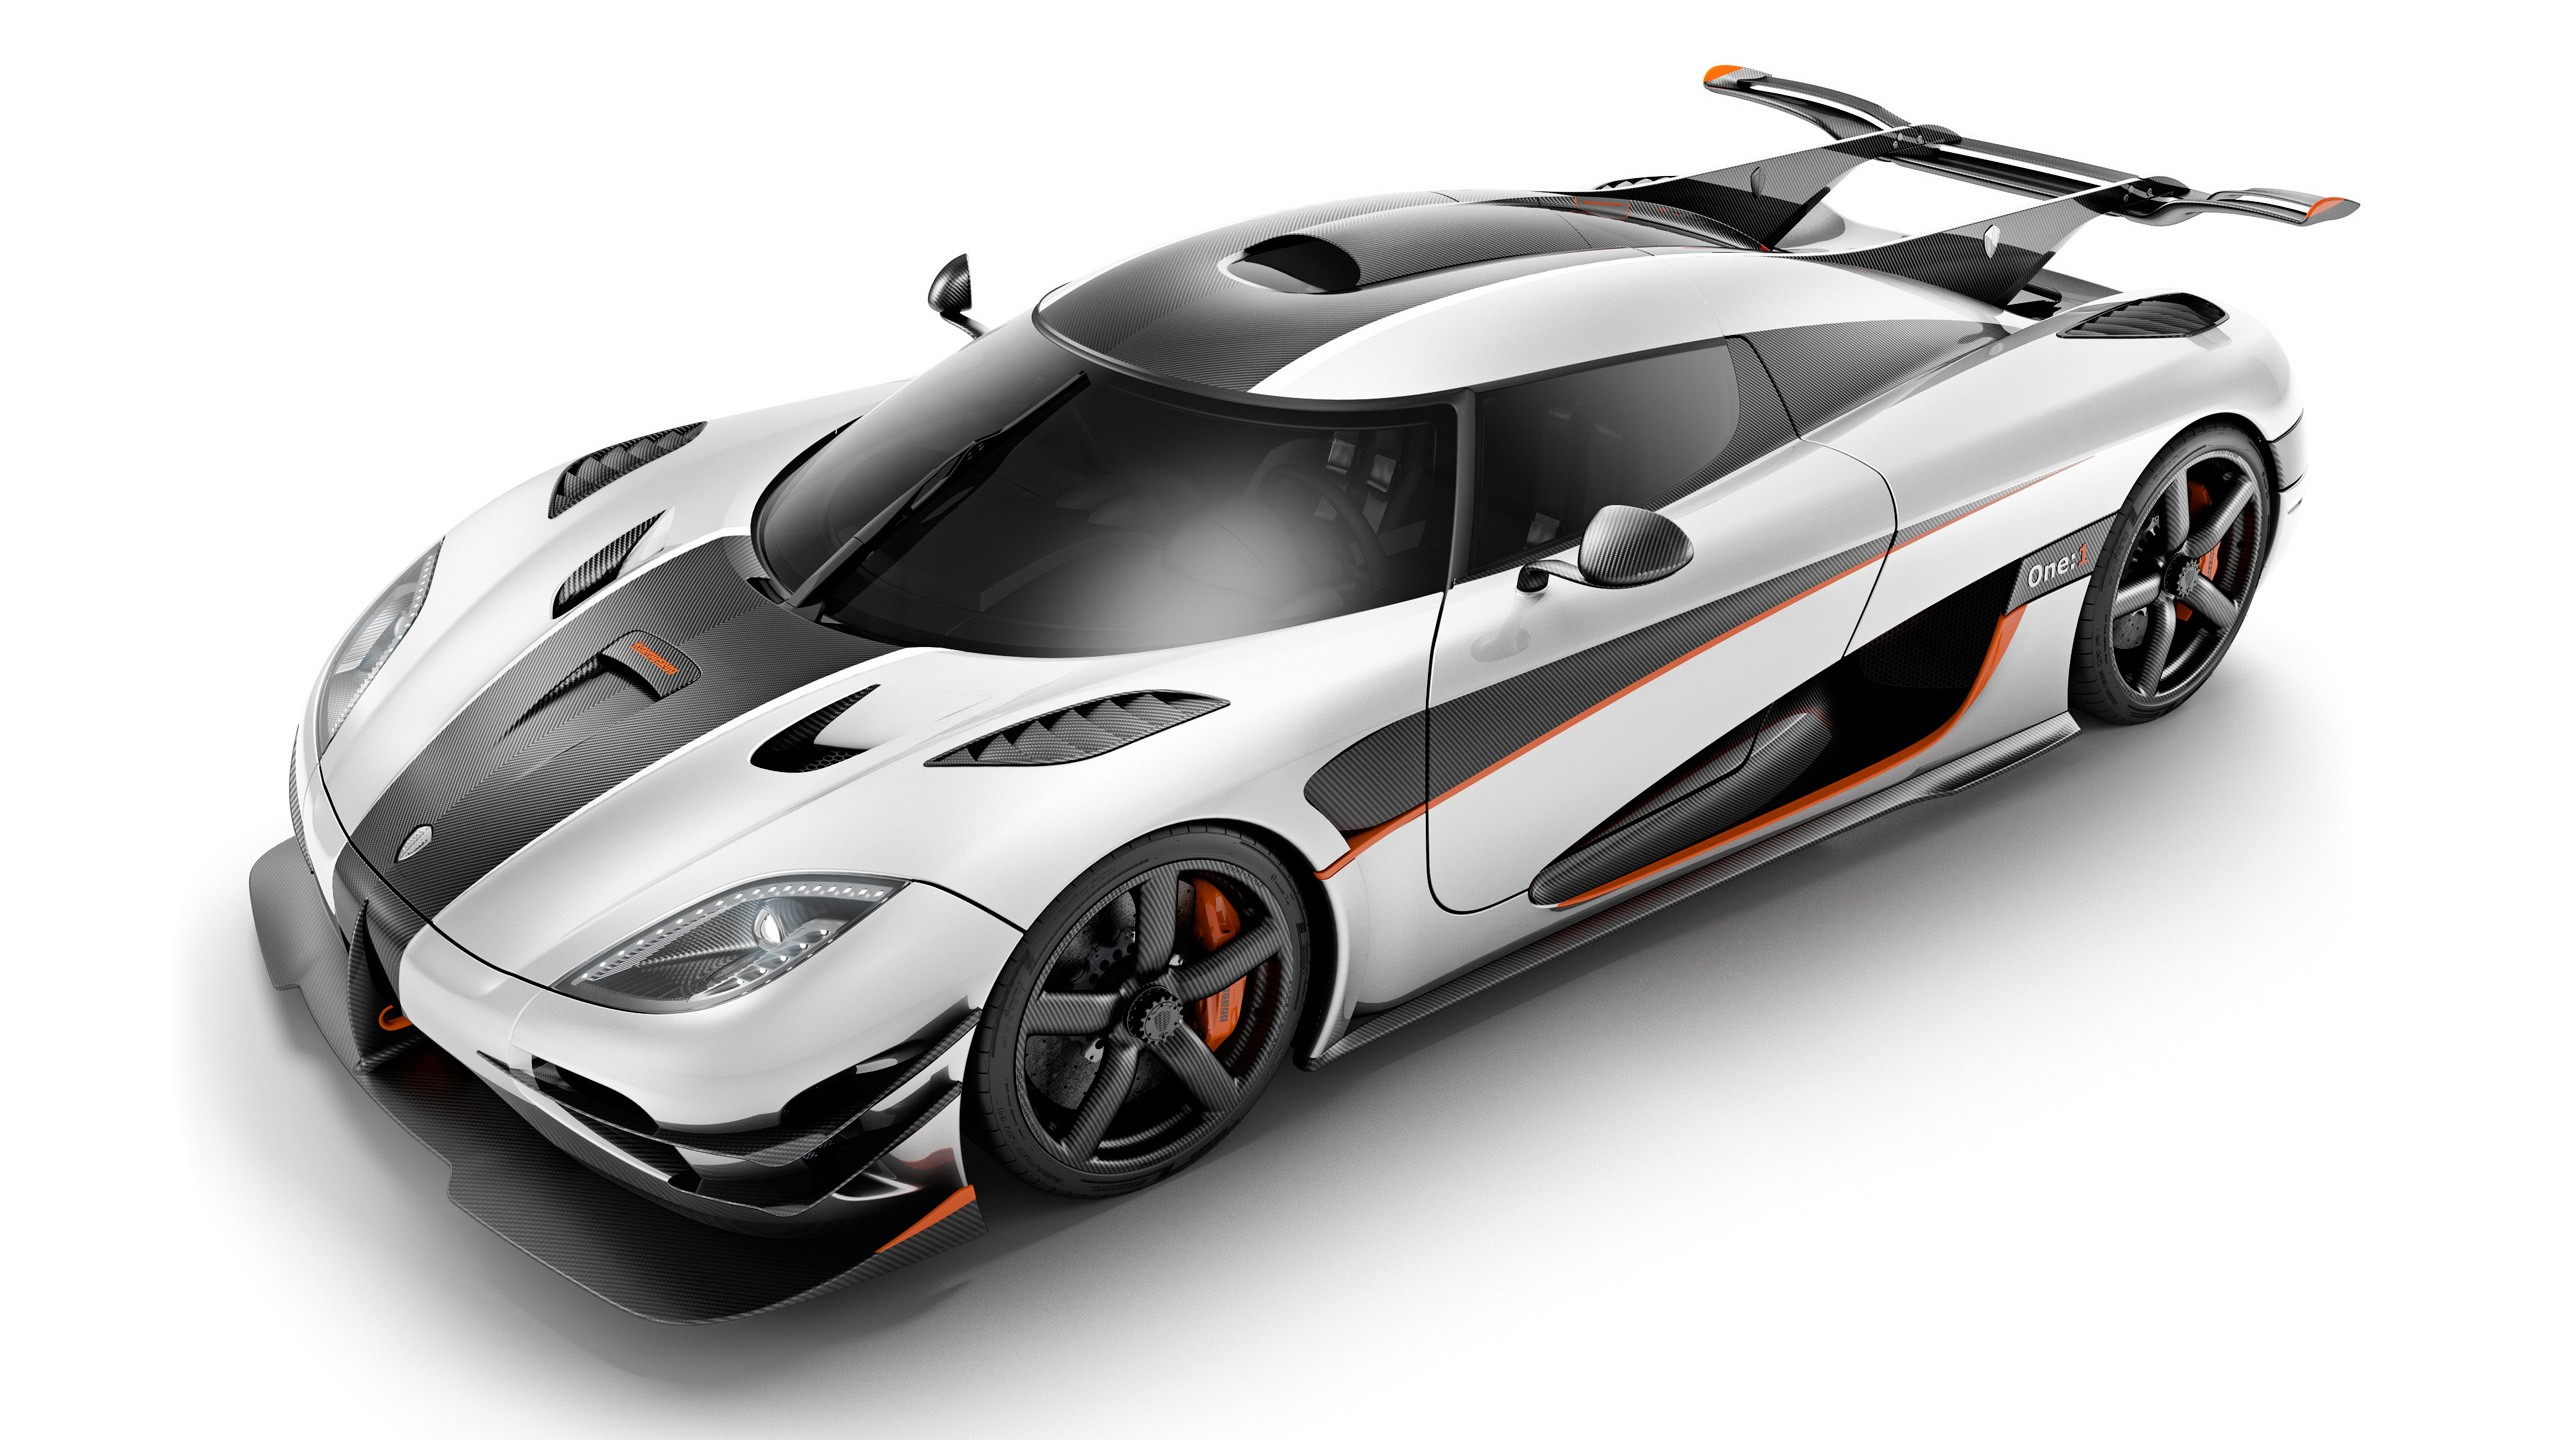 2014 Koenigsegg Agera One 1 Wallpaper Hd Car Wallpapers Id 4184